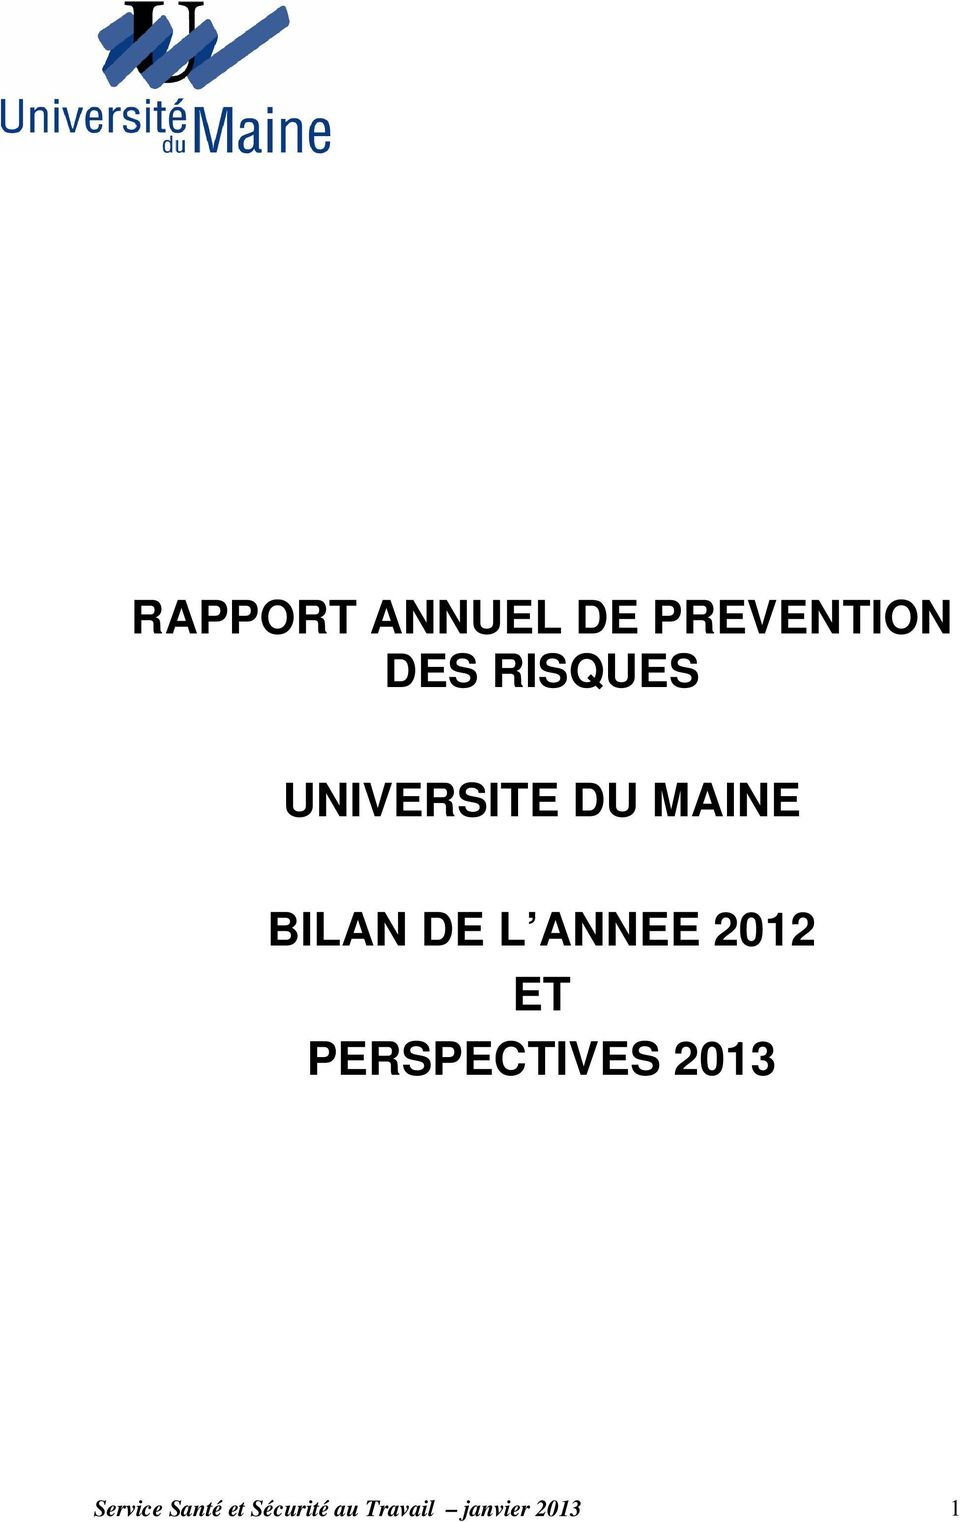 ANNEE 2012 ET PERSPECTIVES 2013